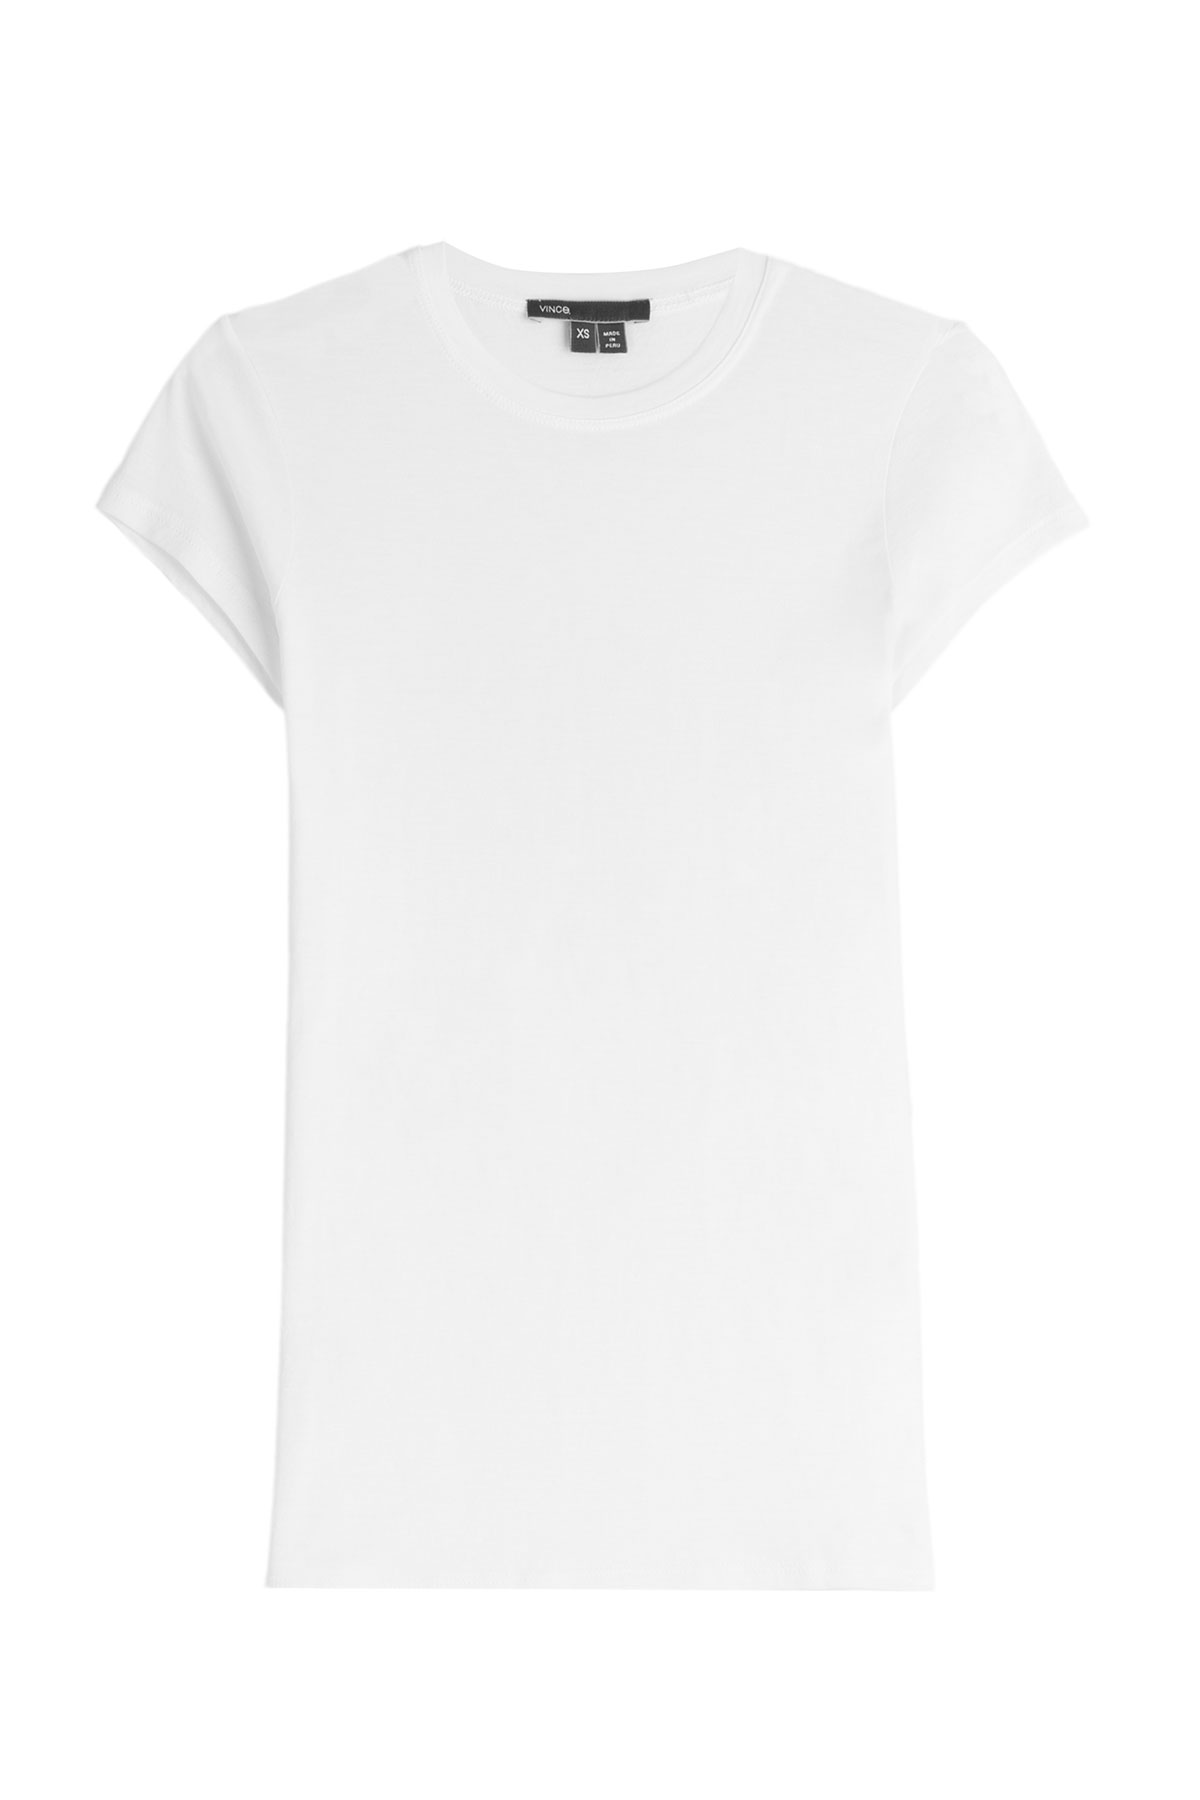 10 best white t shirts perfect white tee shirts to add for Who makes the best white t shirts